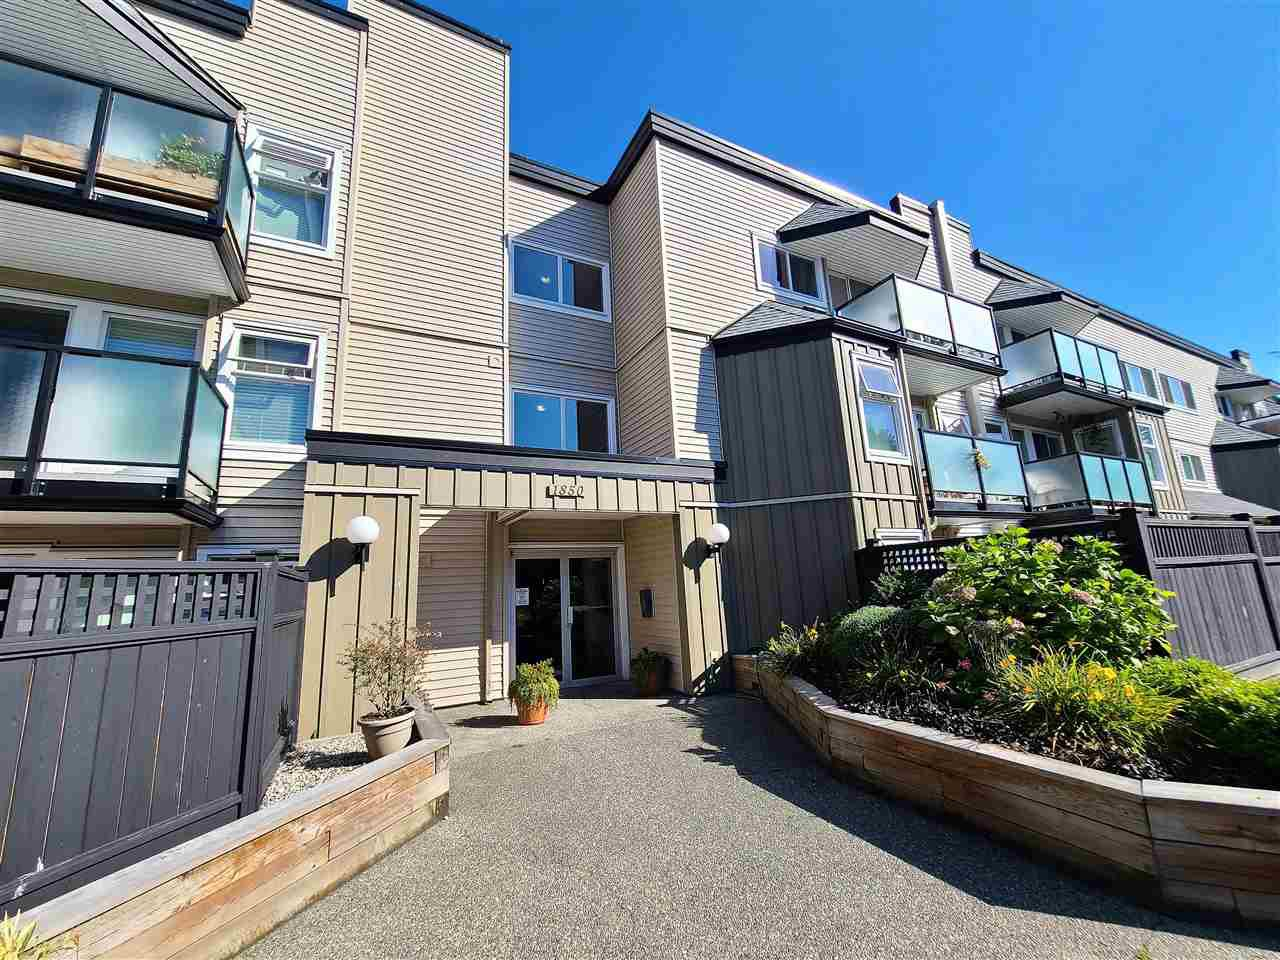 """Main Photo: 116 1850 E SOUTHMERE Crescent in Surrey: Sunnyside Park Surrey Condo for sale in """"SOUTHERMERE PLACE"""" (South Surrey White Rock)  : MLS®# R2496310"""